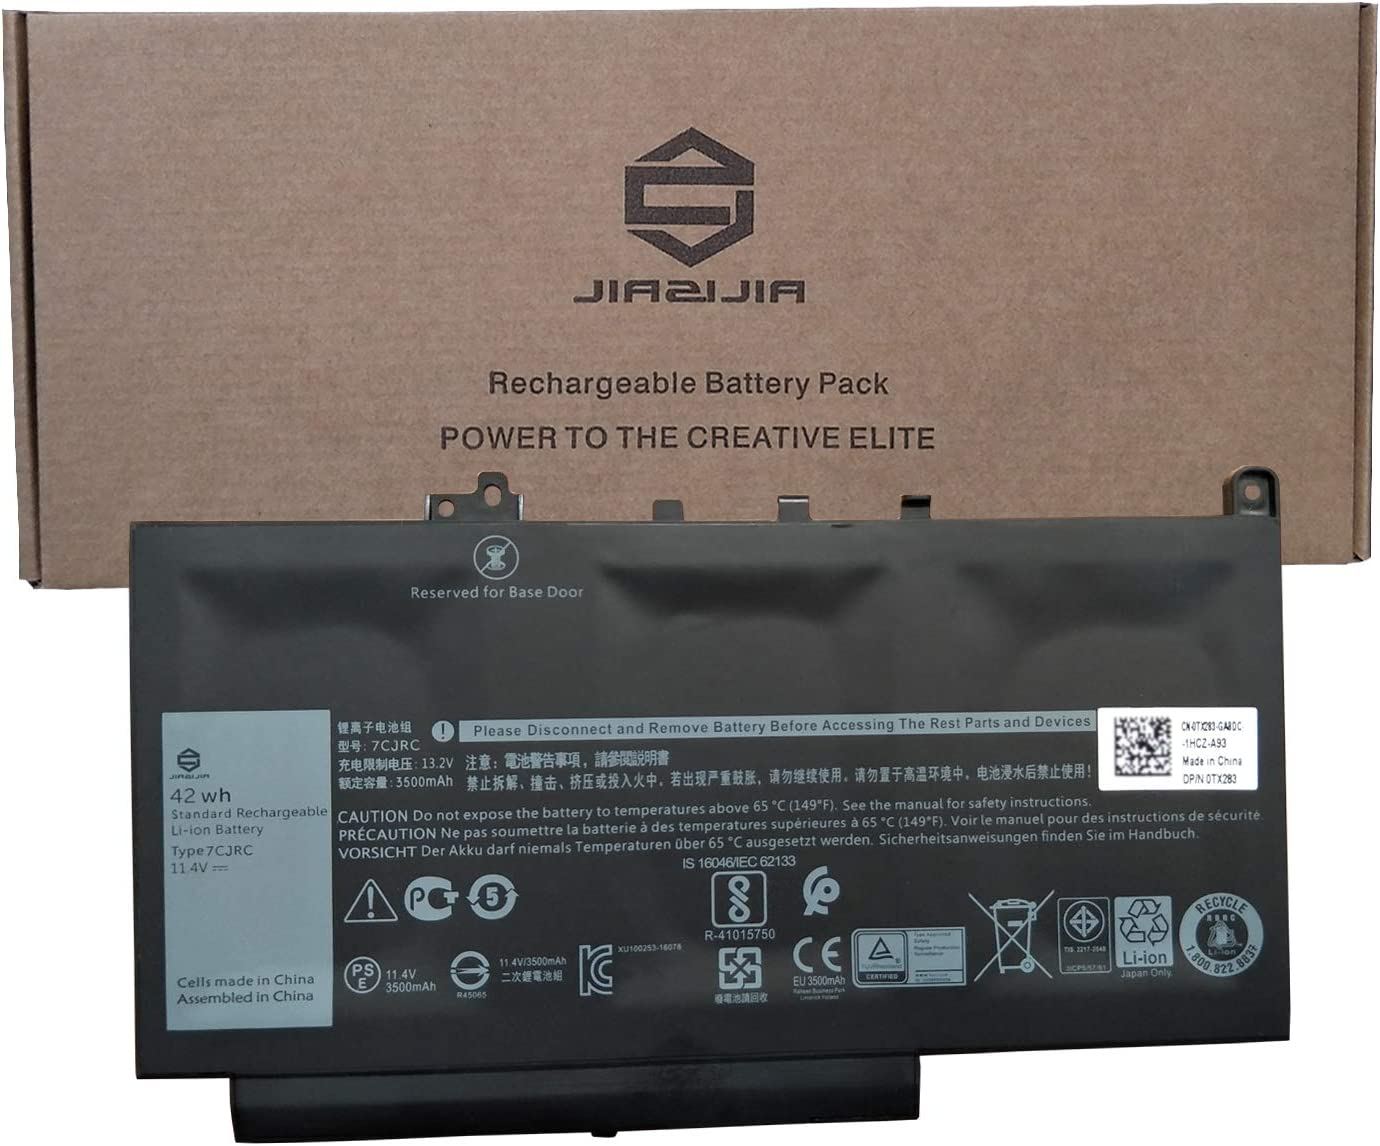 JIAZIJIA 7CJRC Laptop Battery Replacement for Dell Latitude 7470 7270 E7470 E7270 Series Notebook KNM09 0KNM09 21X15 021X15 TX283 0TX283 Black 11.4V 42Wh 3500mAh 3-Cell